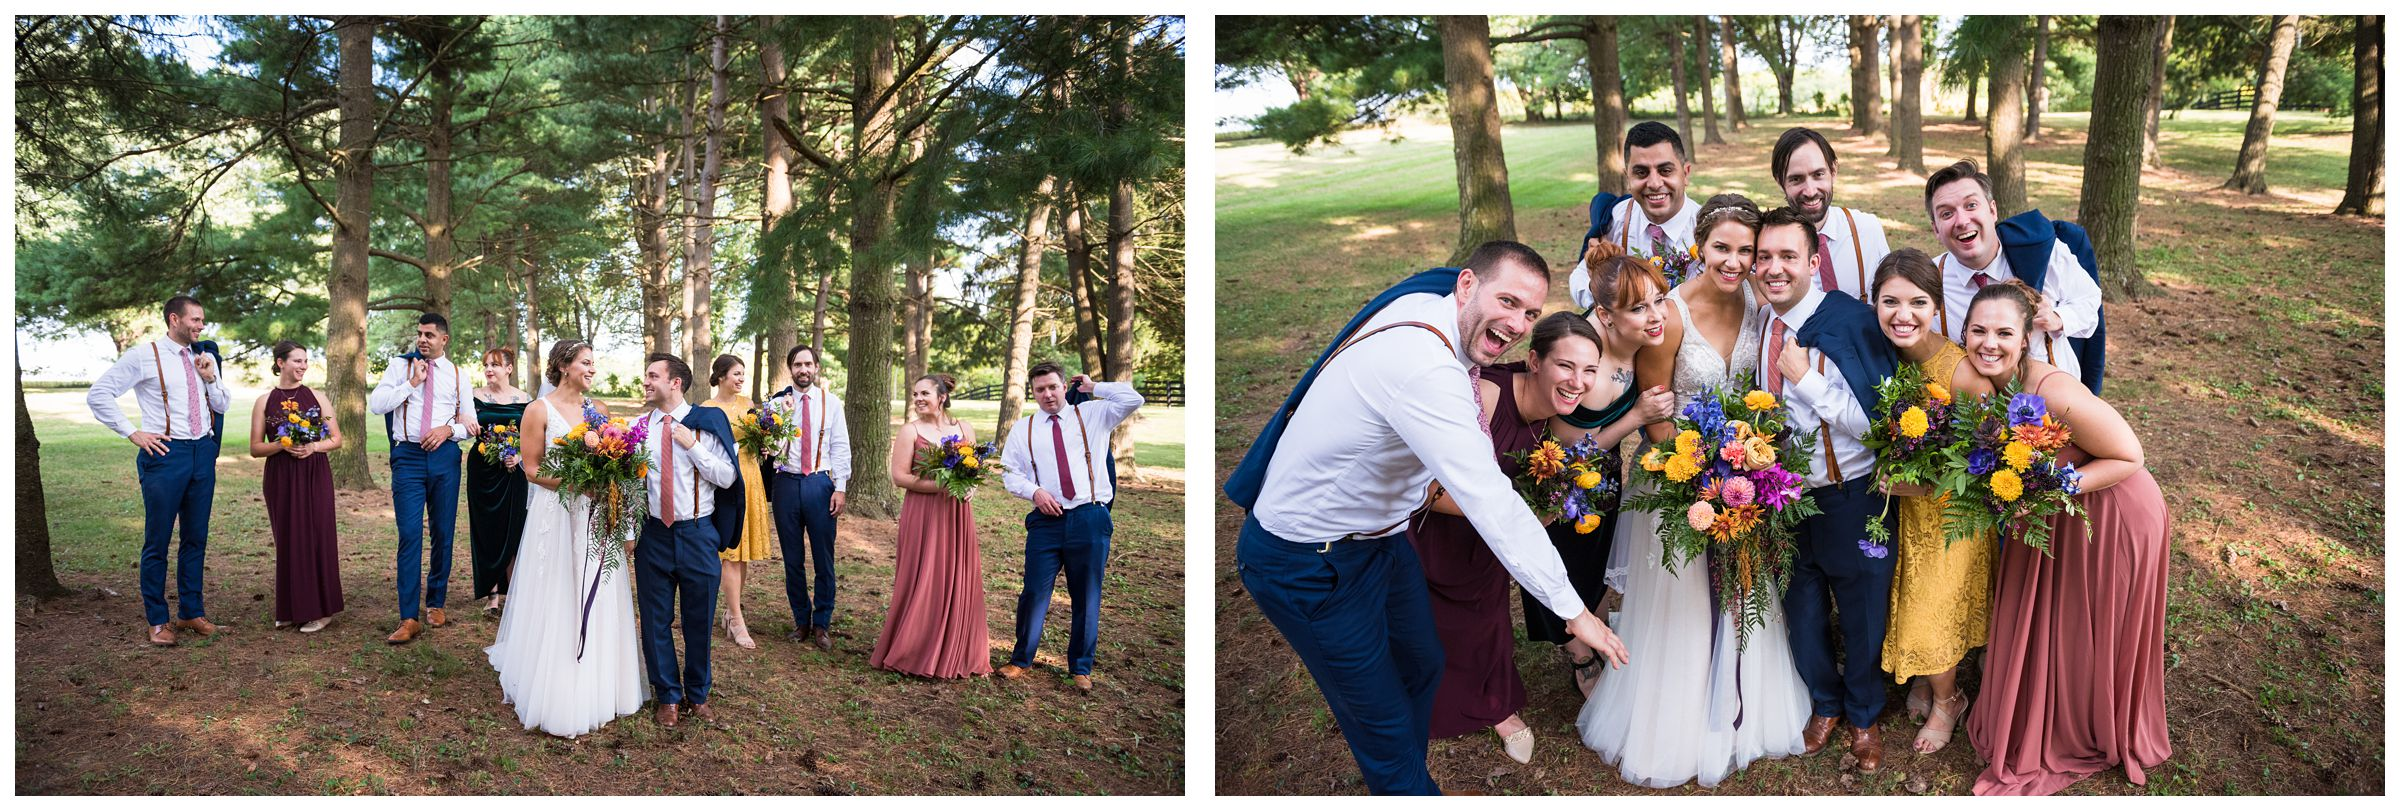 wedding party in fall colors under pine tree forest during rustic farm wedding in Lancaster, Ohio